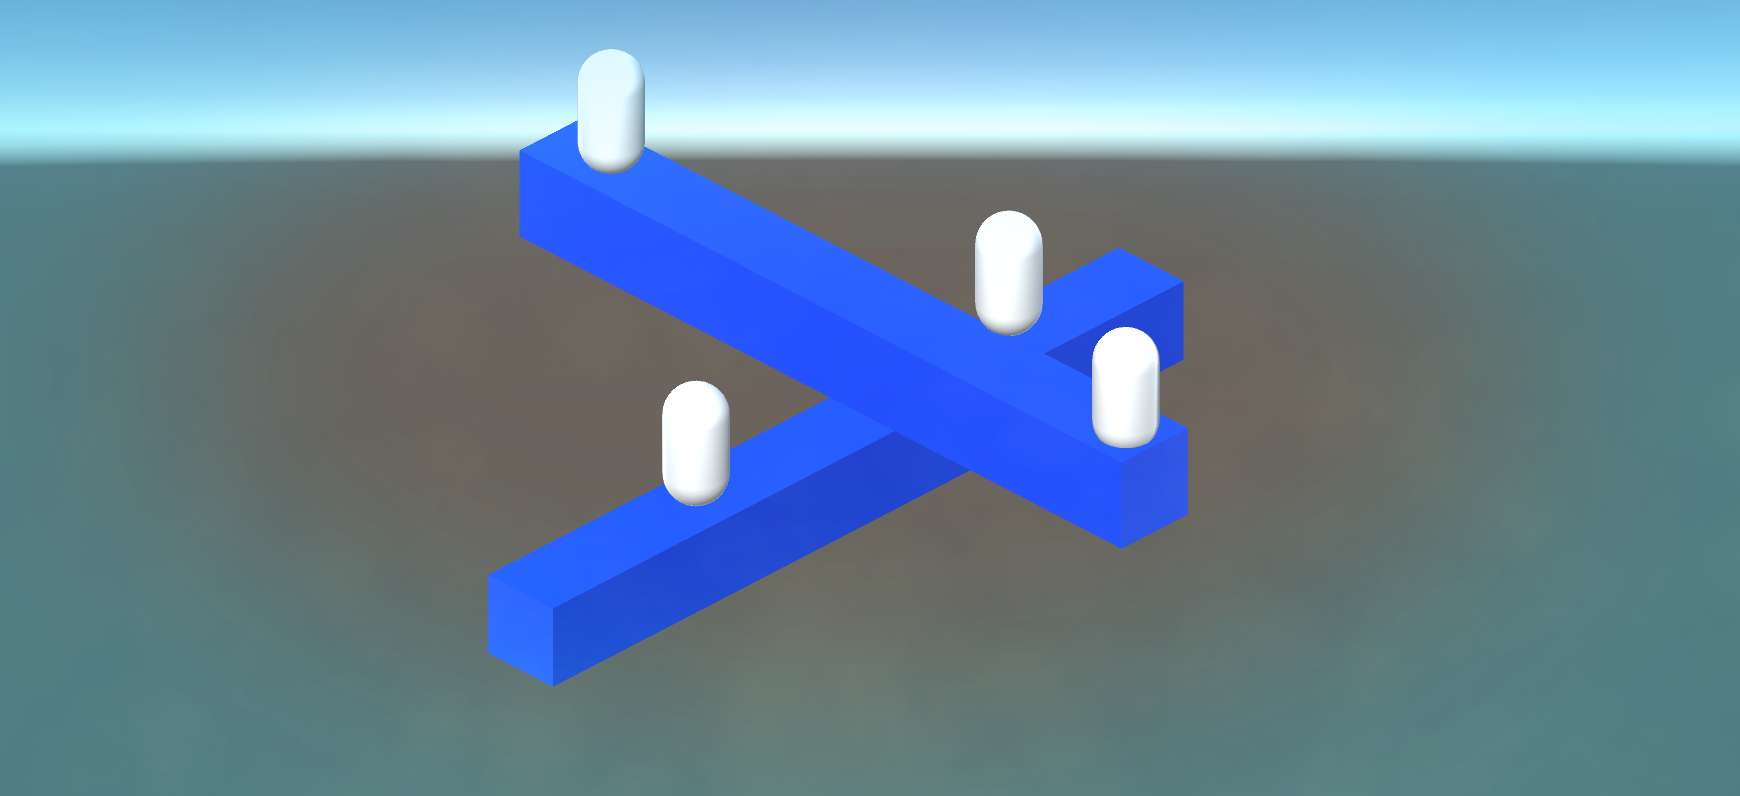 Make a Game with Unity's Navigation Components – Part 1